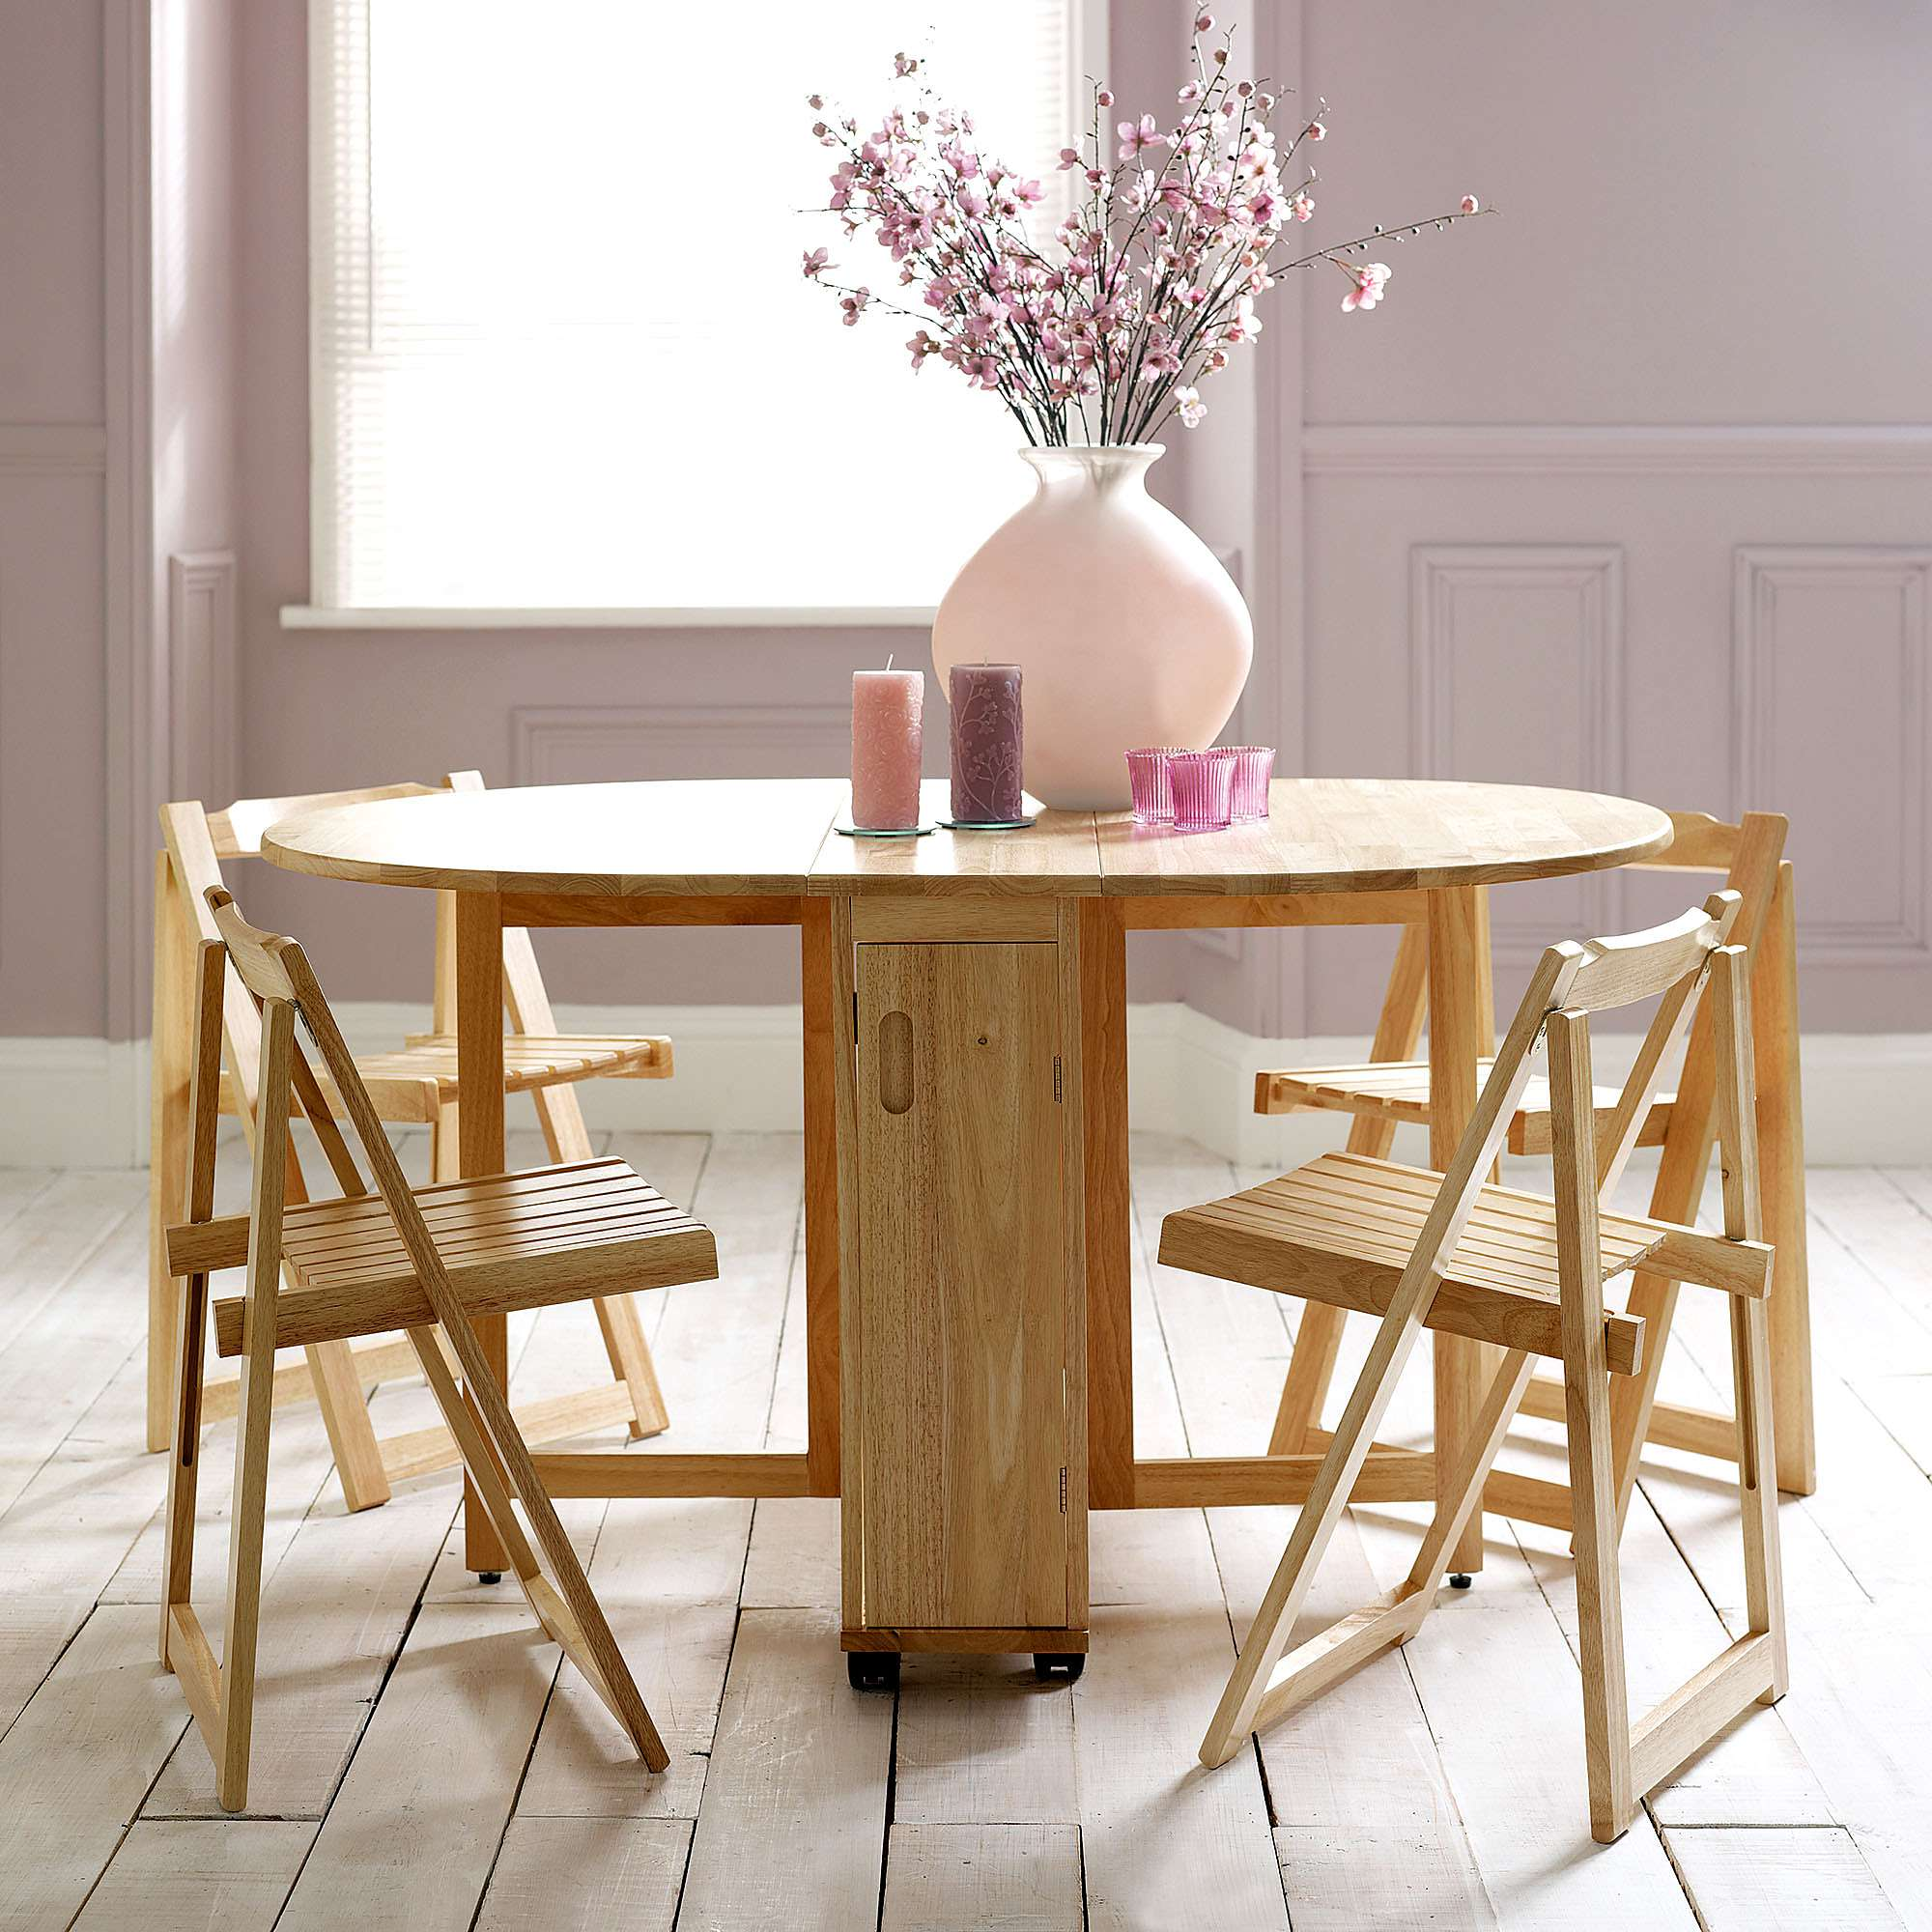 Collapsible Kitchen Table Choose A Folding Dining Table For A Small Space  Adorable Home